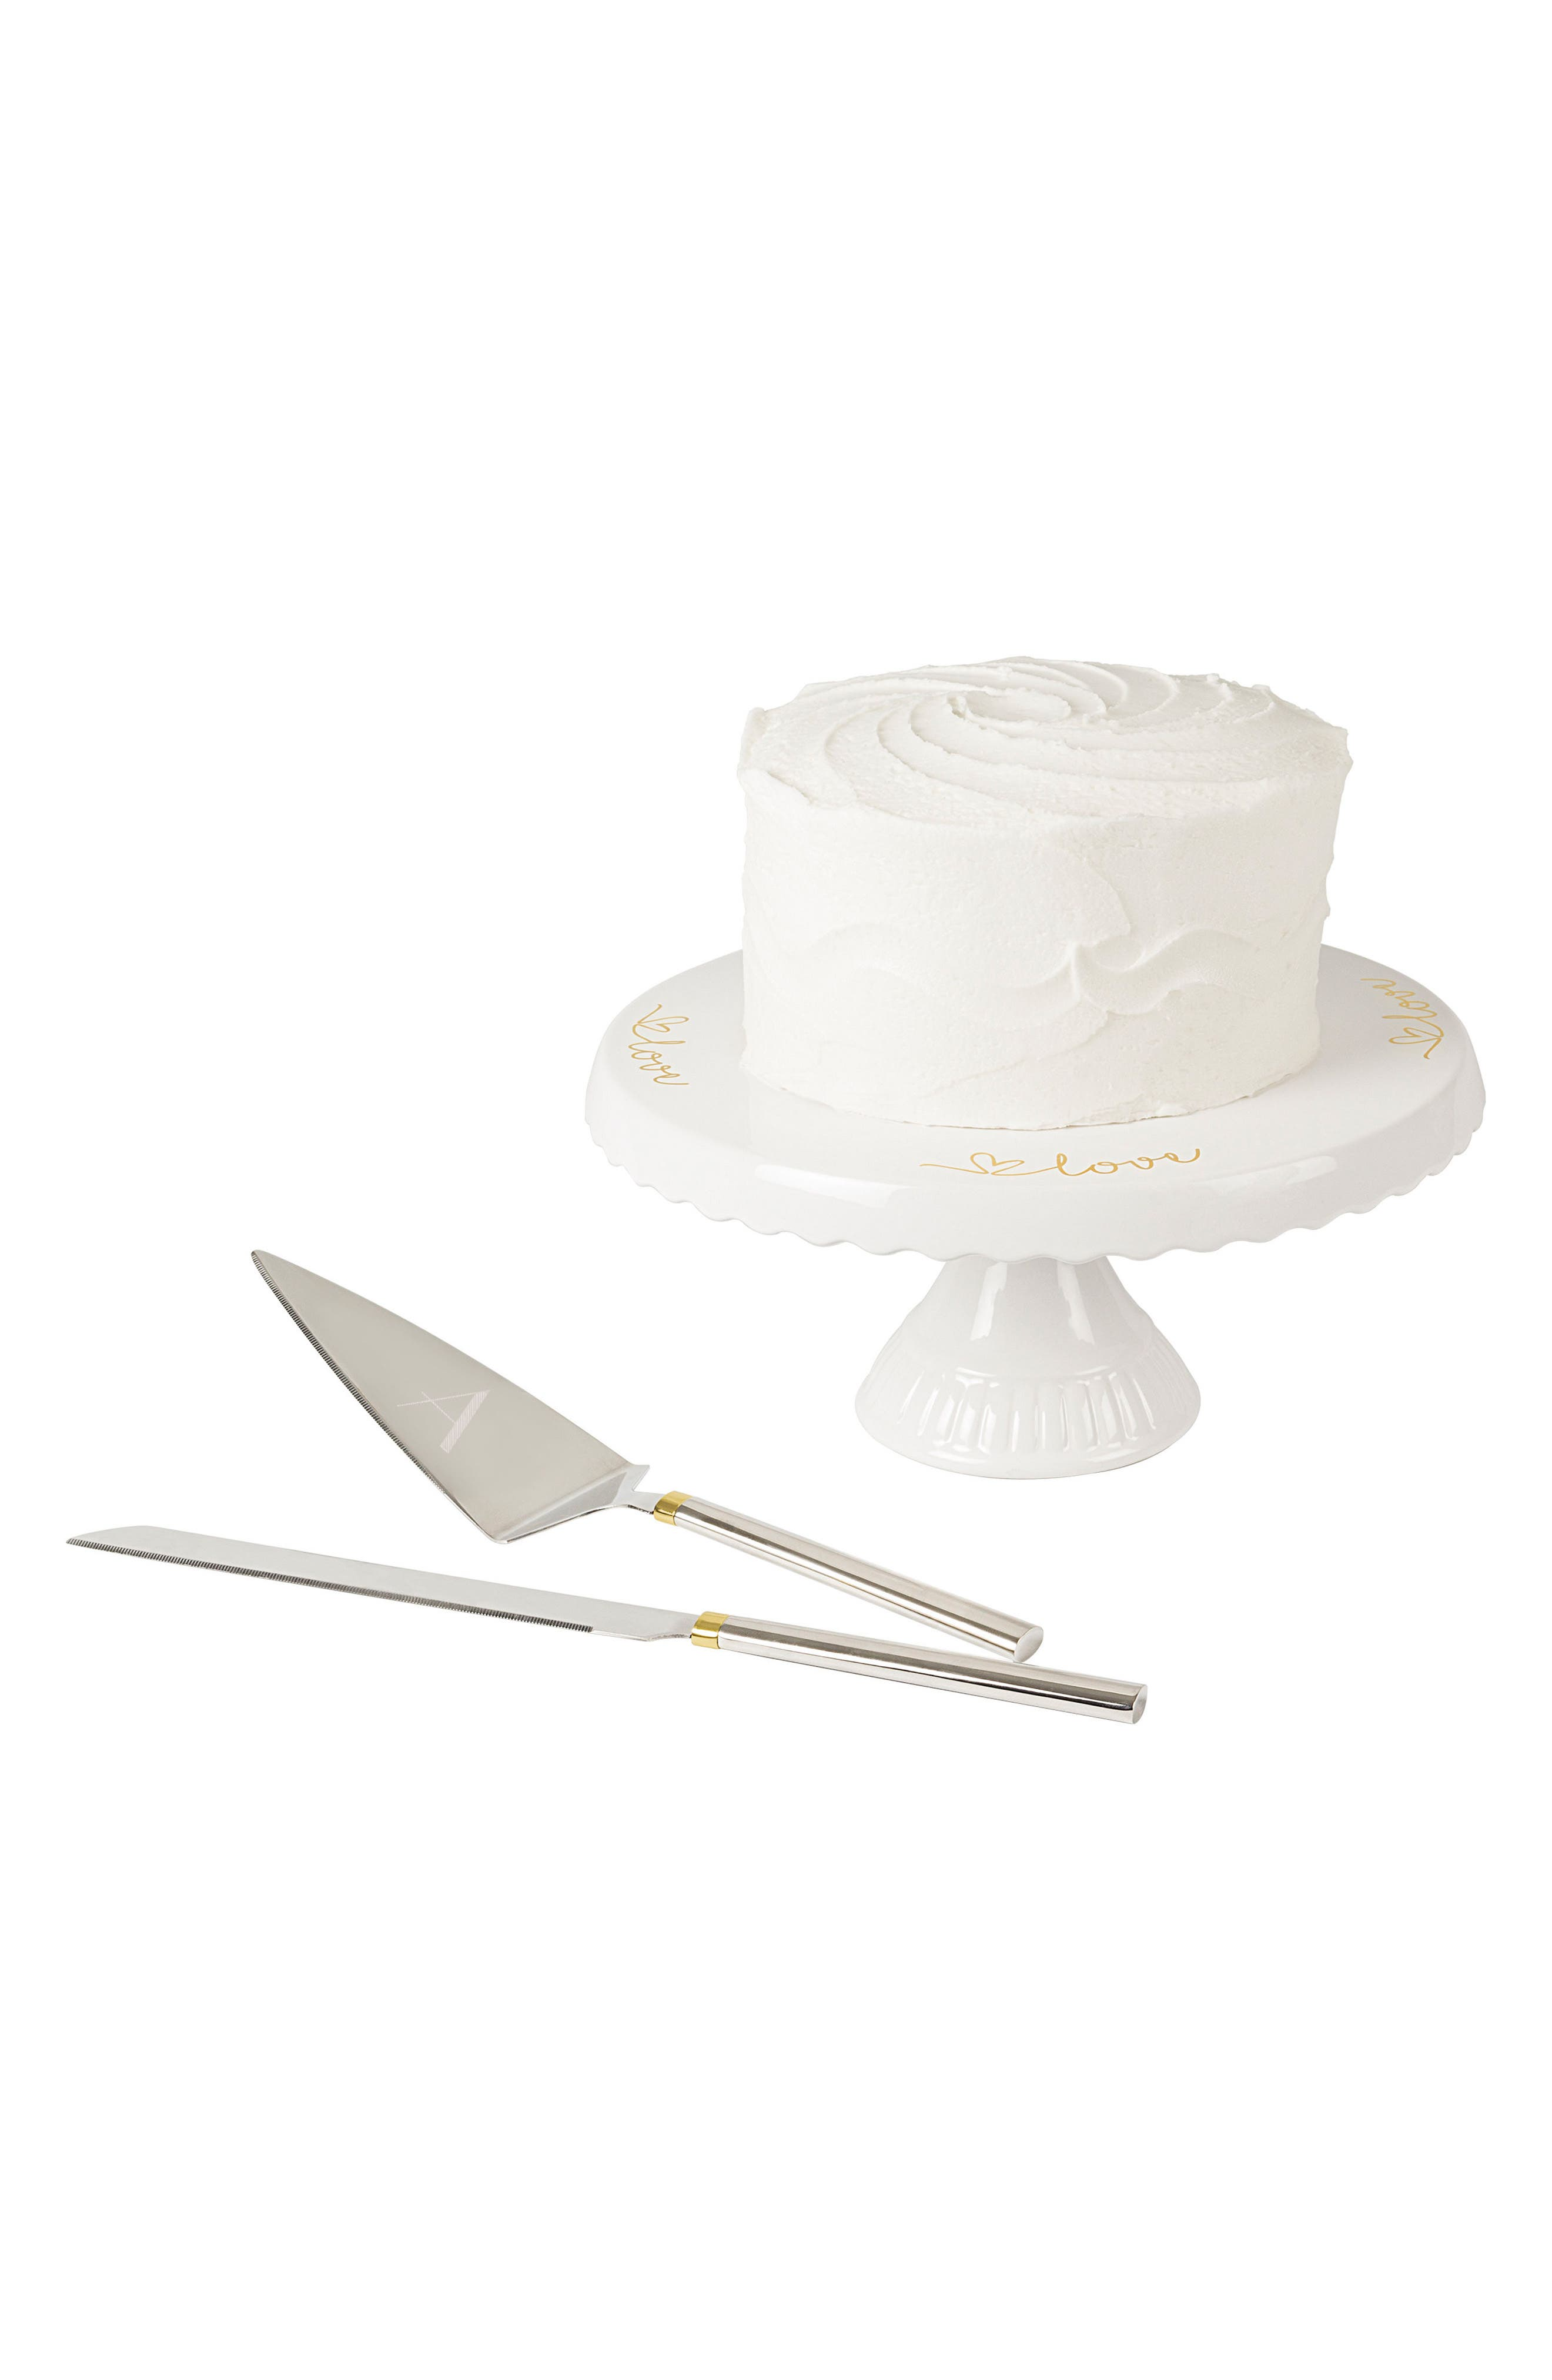 Love Monogram Cake Stand & Server Set,                             Main thumbnail 2, color,